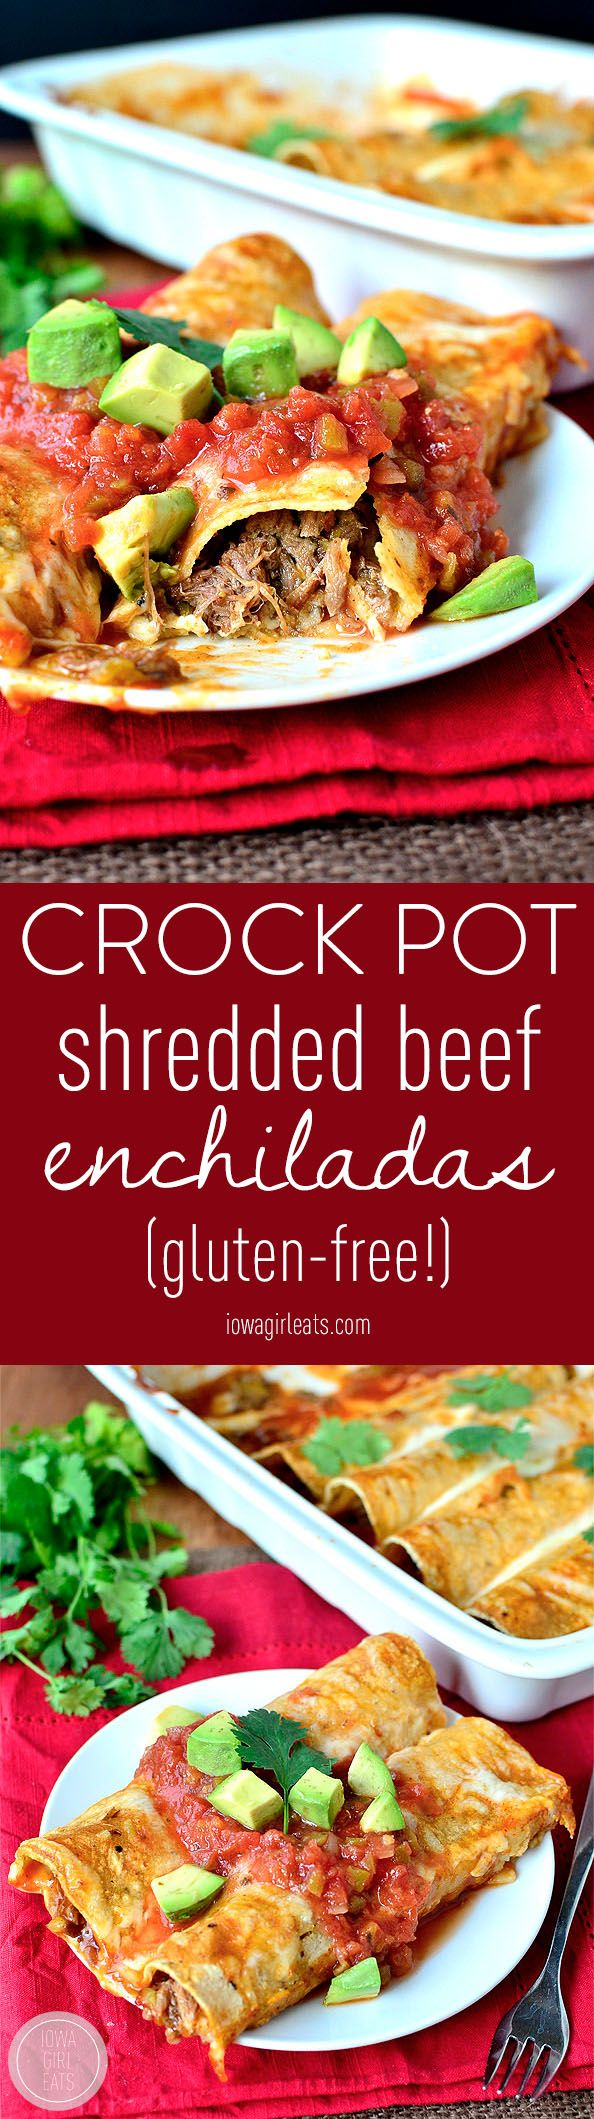 Gluten-free Crock Pot Shredded Beef Enchiladas are seriously succulent. Skip the restaurant and make easy enchiladas at home. #glutenfree | iowagirleats.com